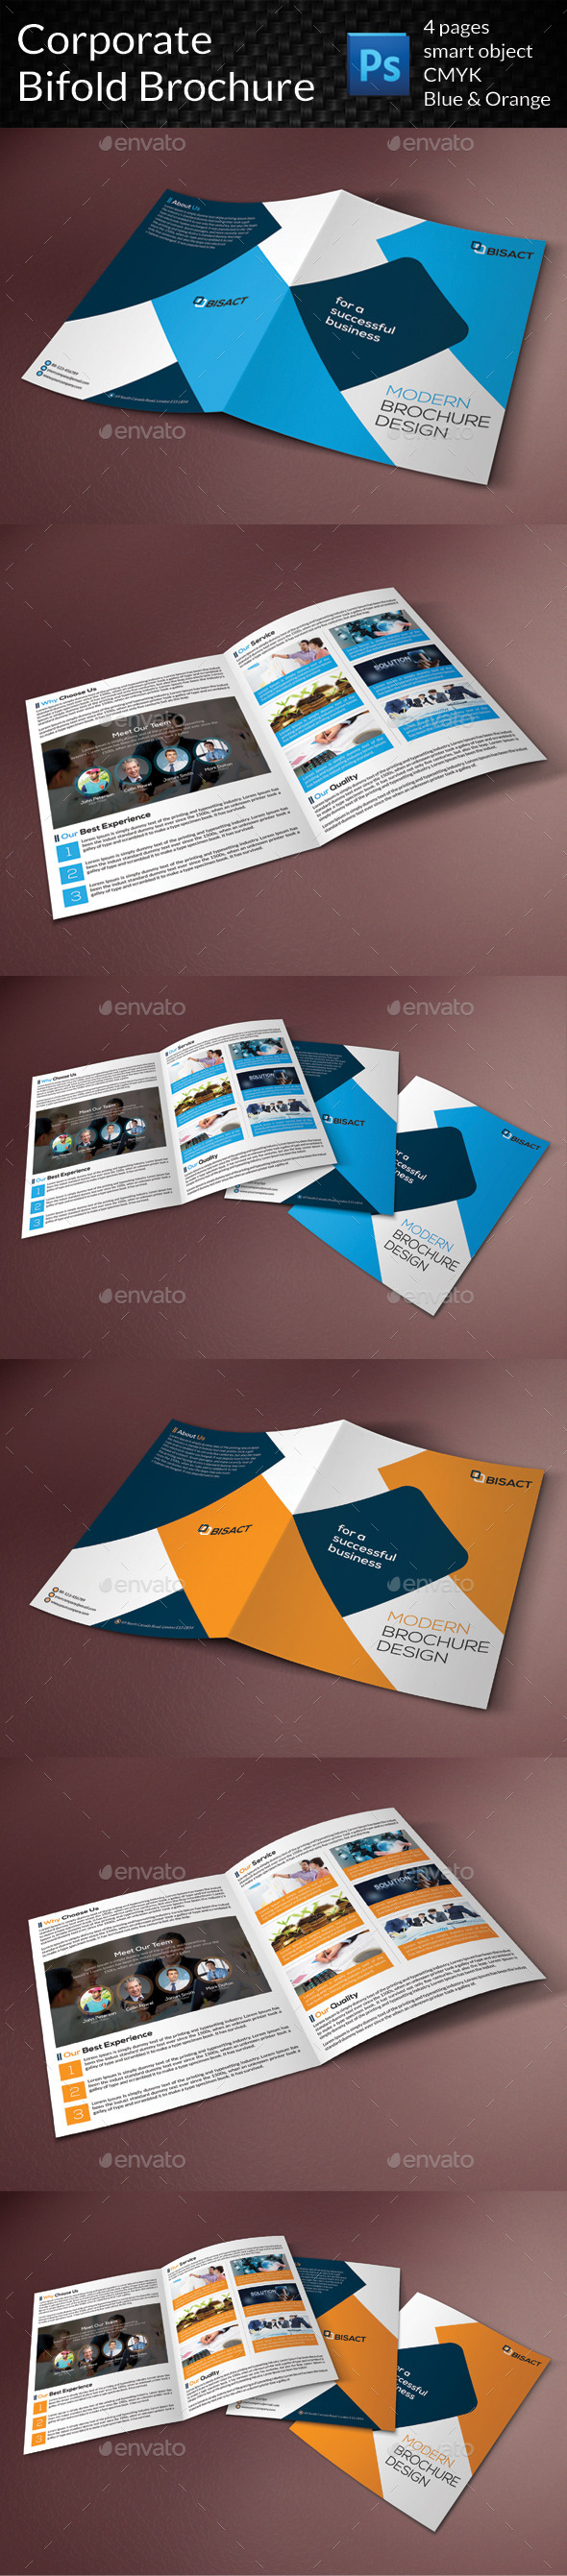 GraphicRiver Corporate Bifold Brochure 9323924